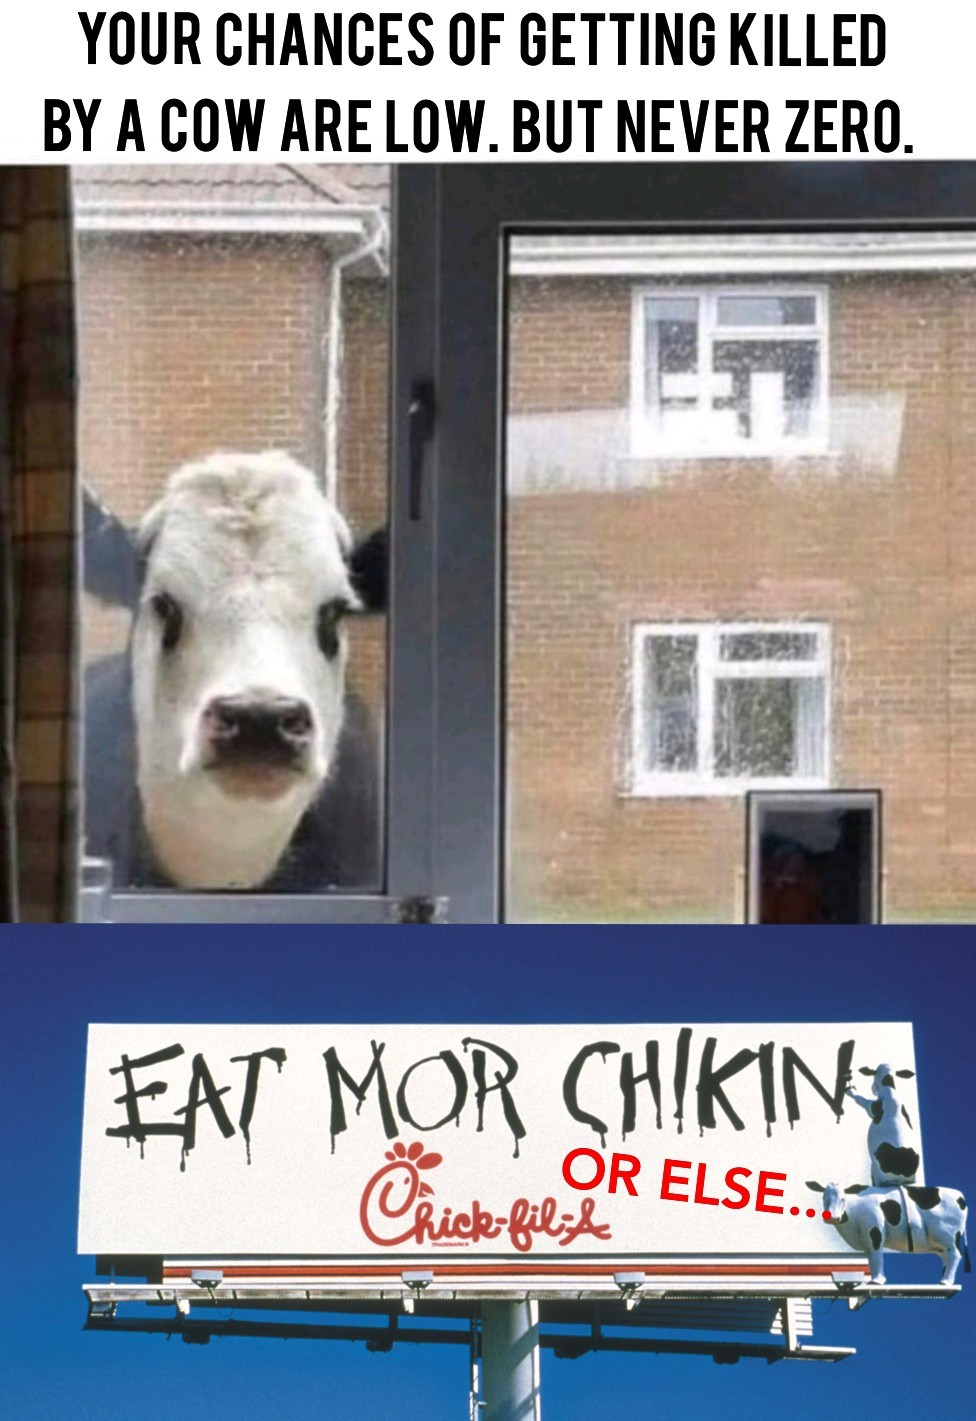 Chic fil la cows out for serious blood - meme